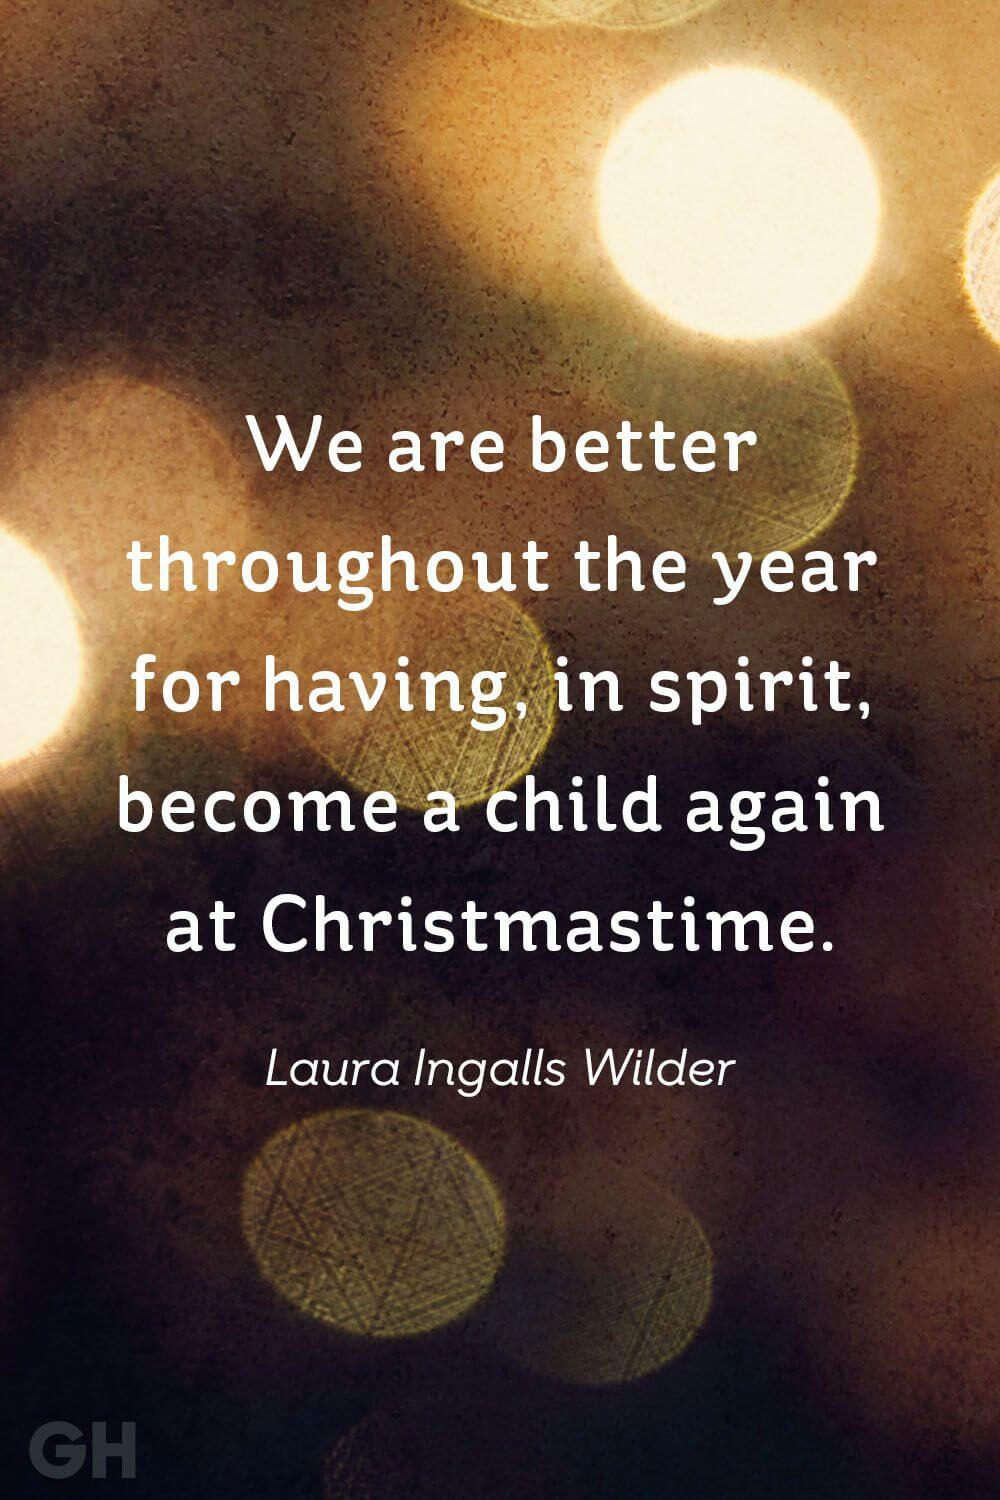 christmas-quote-laura-ingalls-wilder (1).jpg